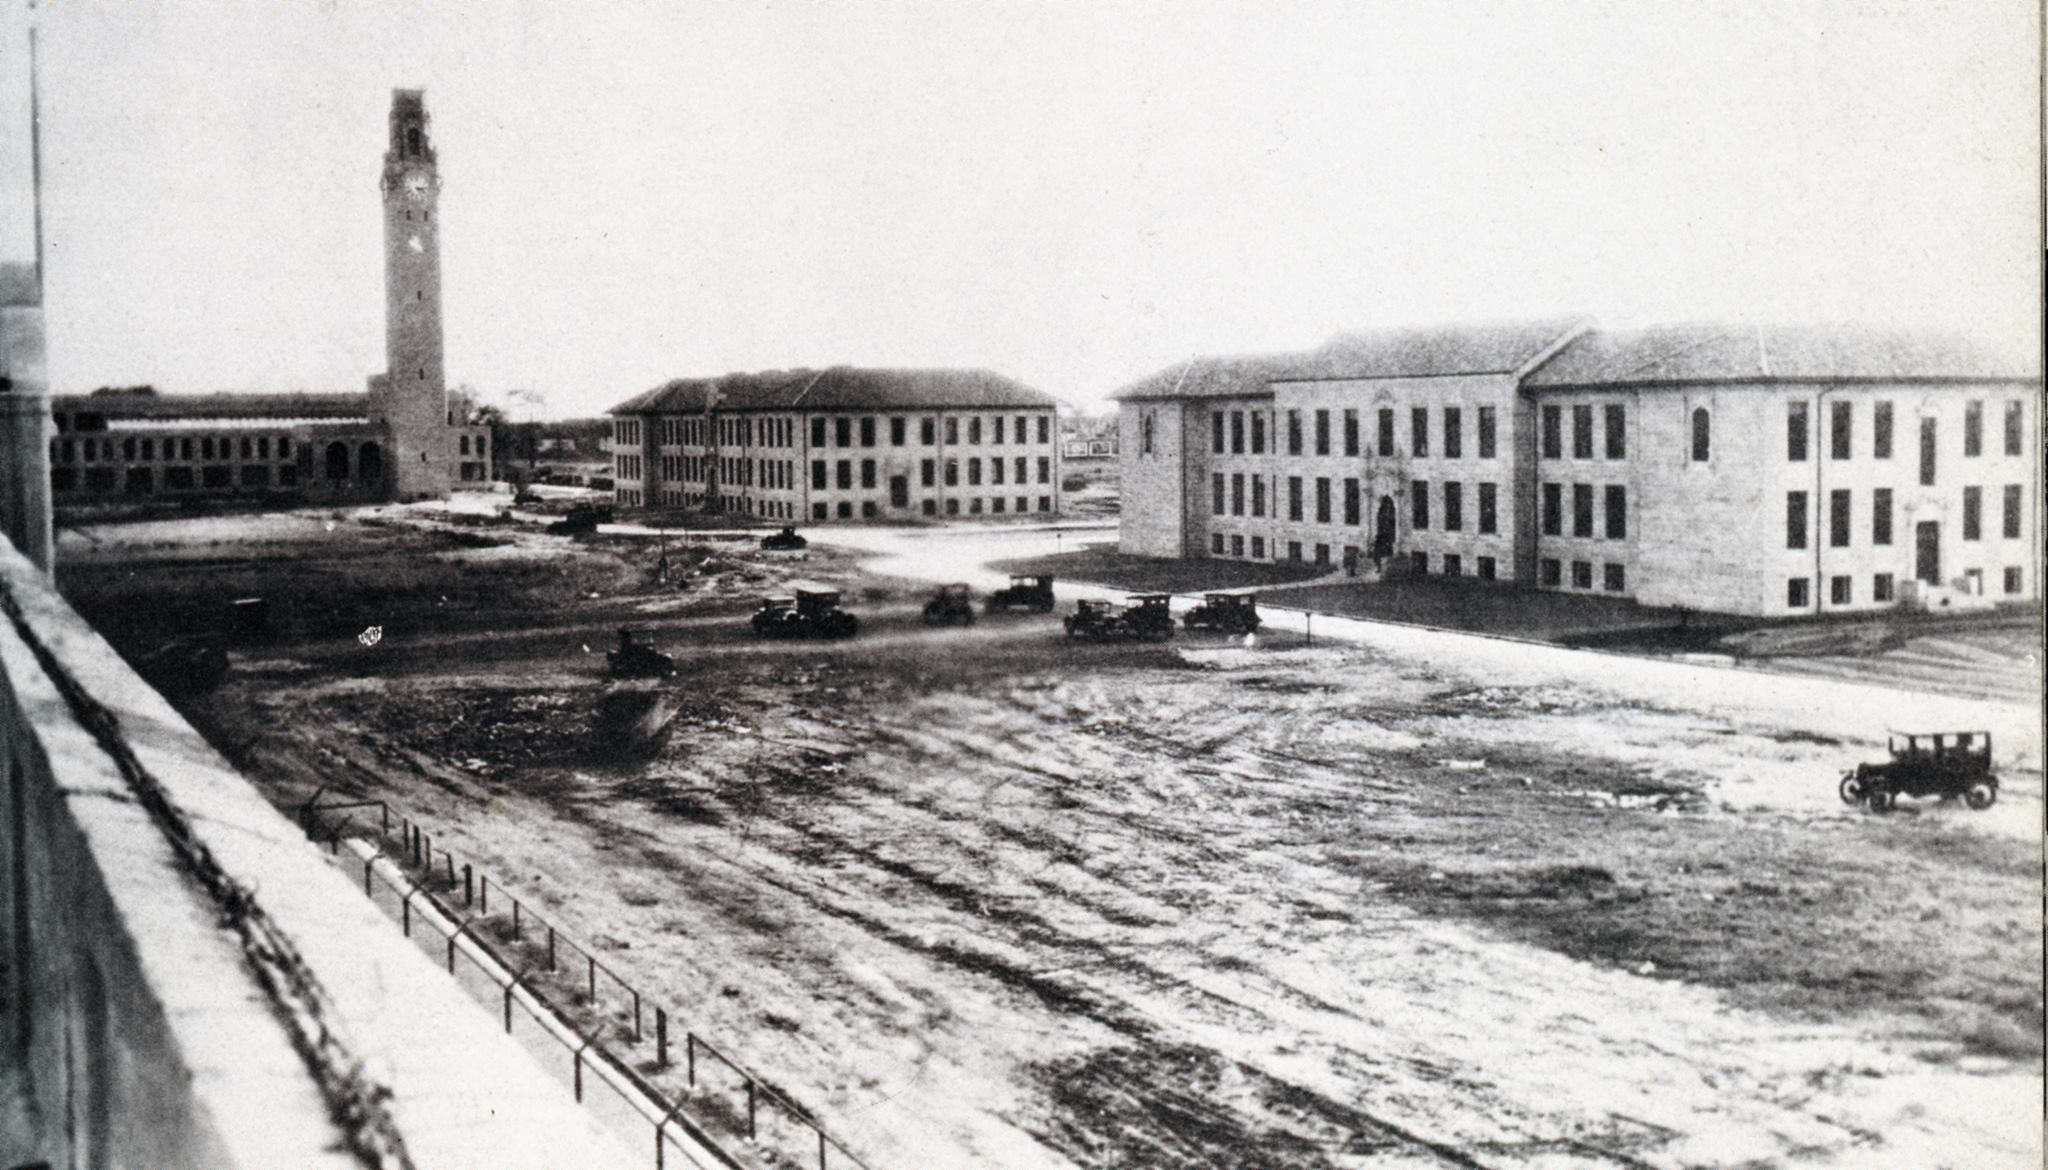 It was this photo of the McNichols Campus under construction that inspired Ken Tash '78 to start his Facebook group dedicated to University of Detroit Mercy history.